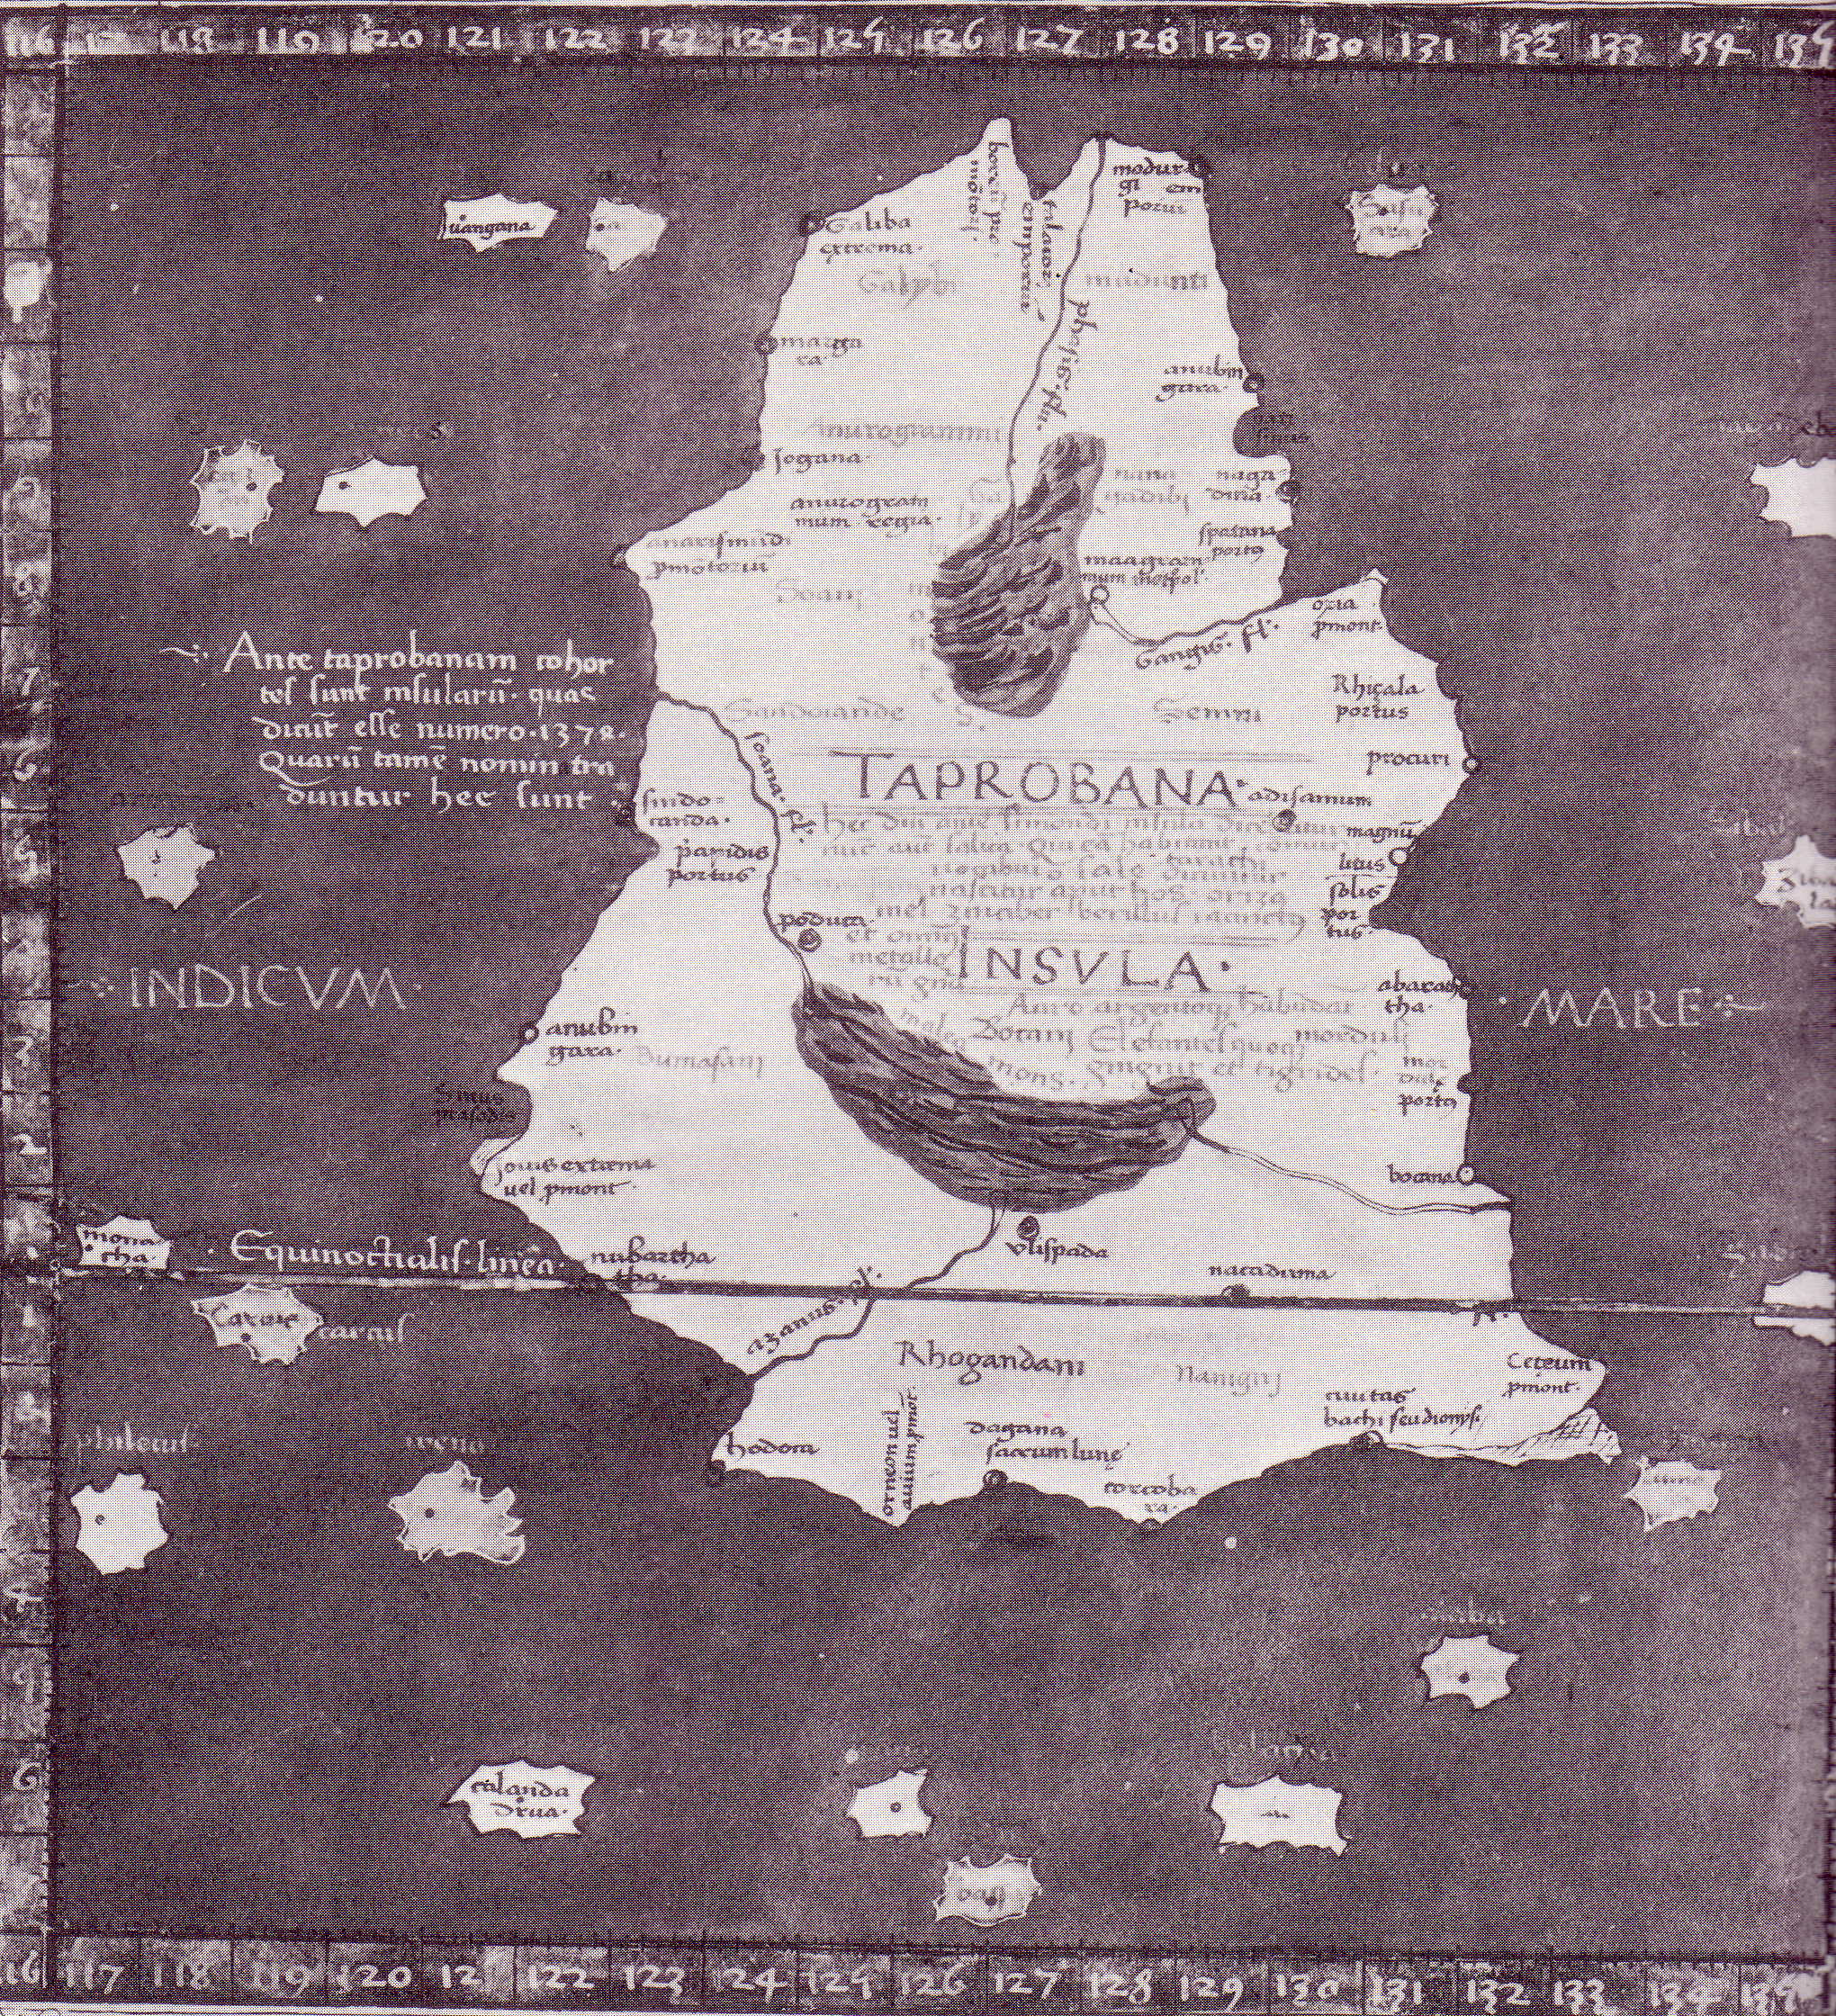 Ptolemy's Taprobana Map circa 2nd century AD